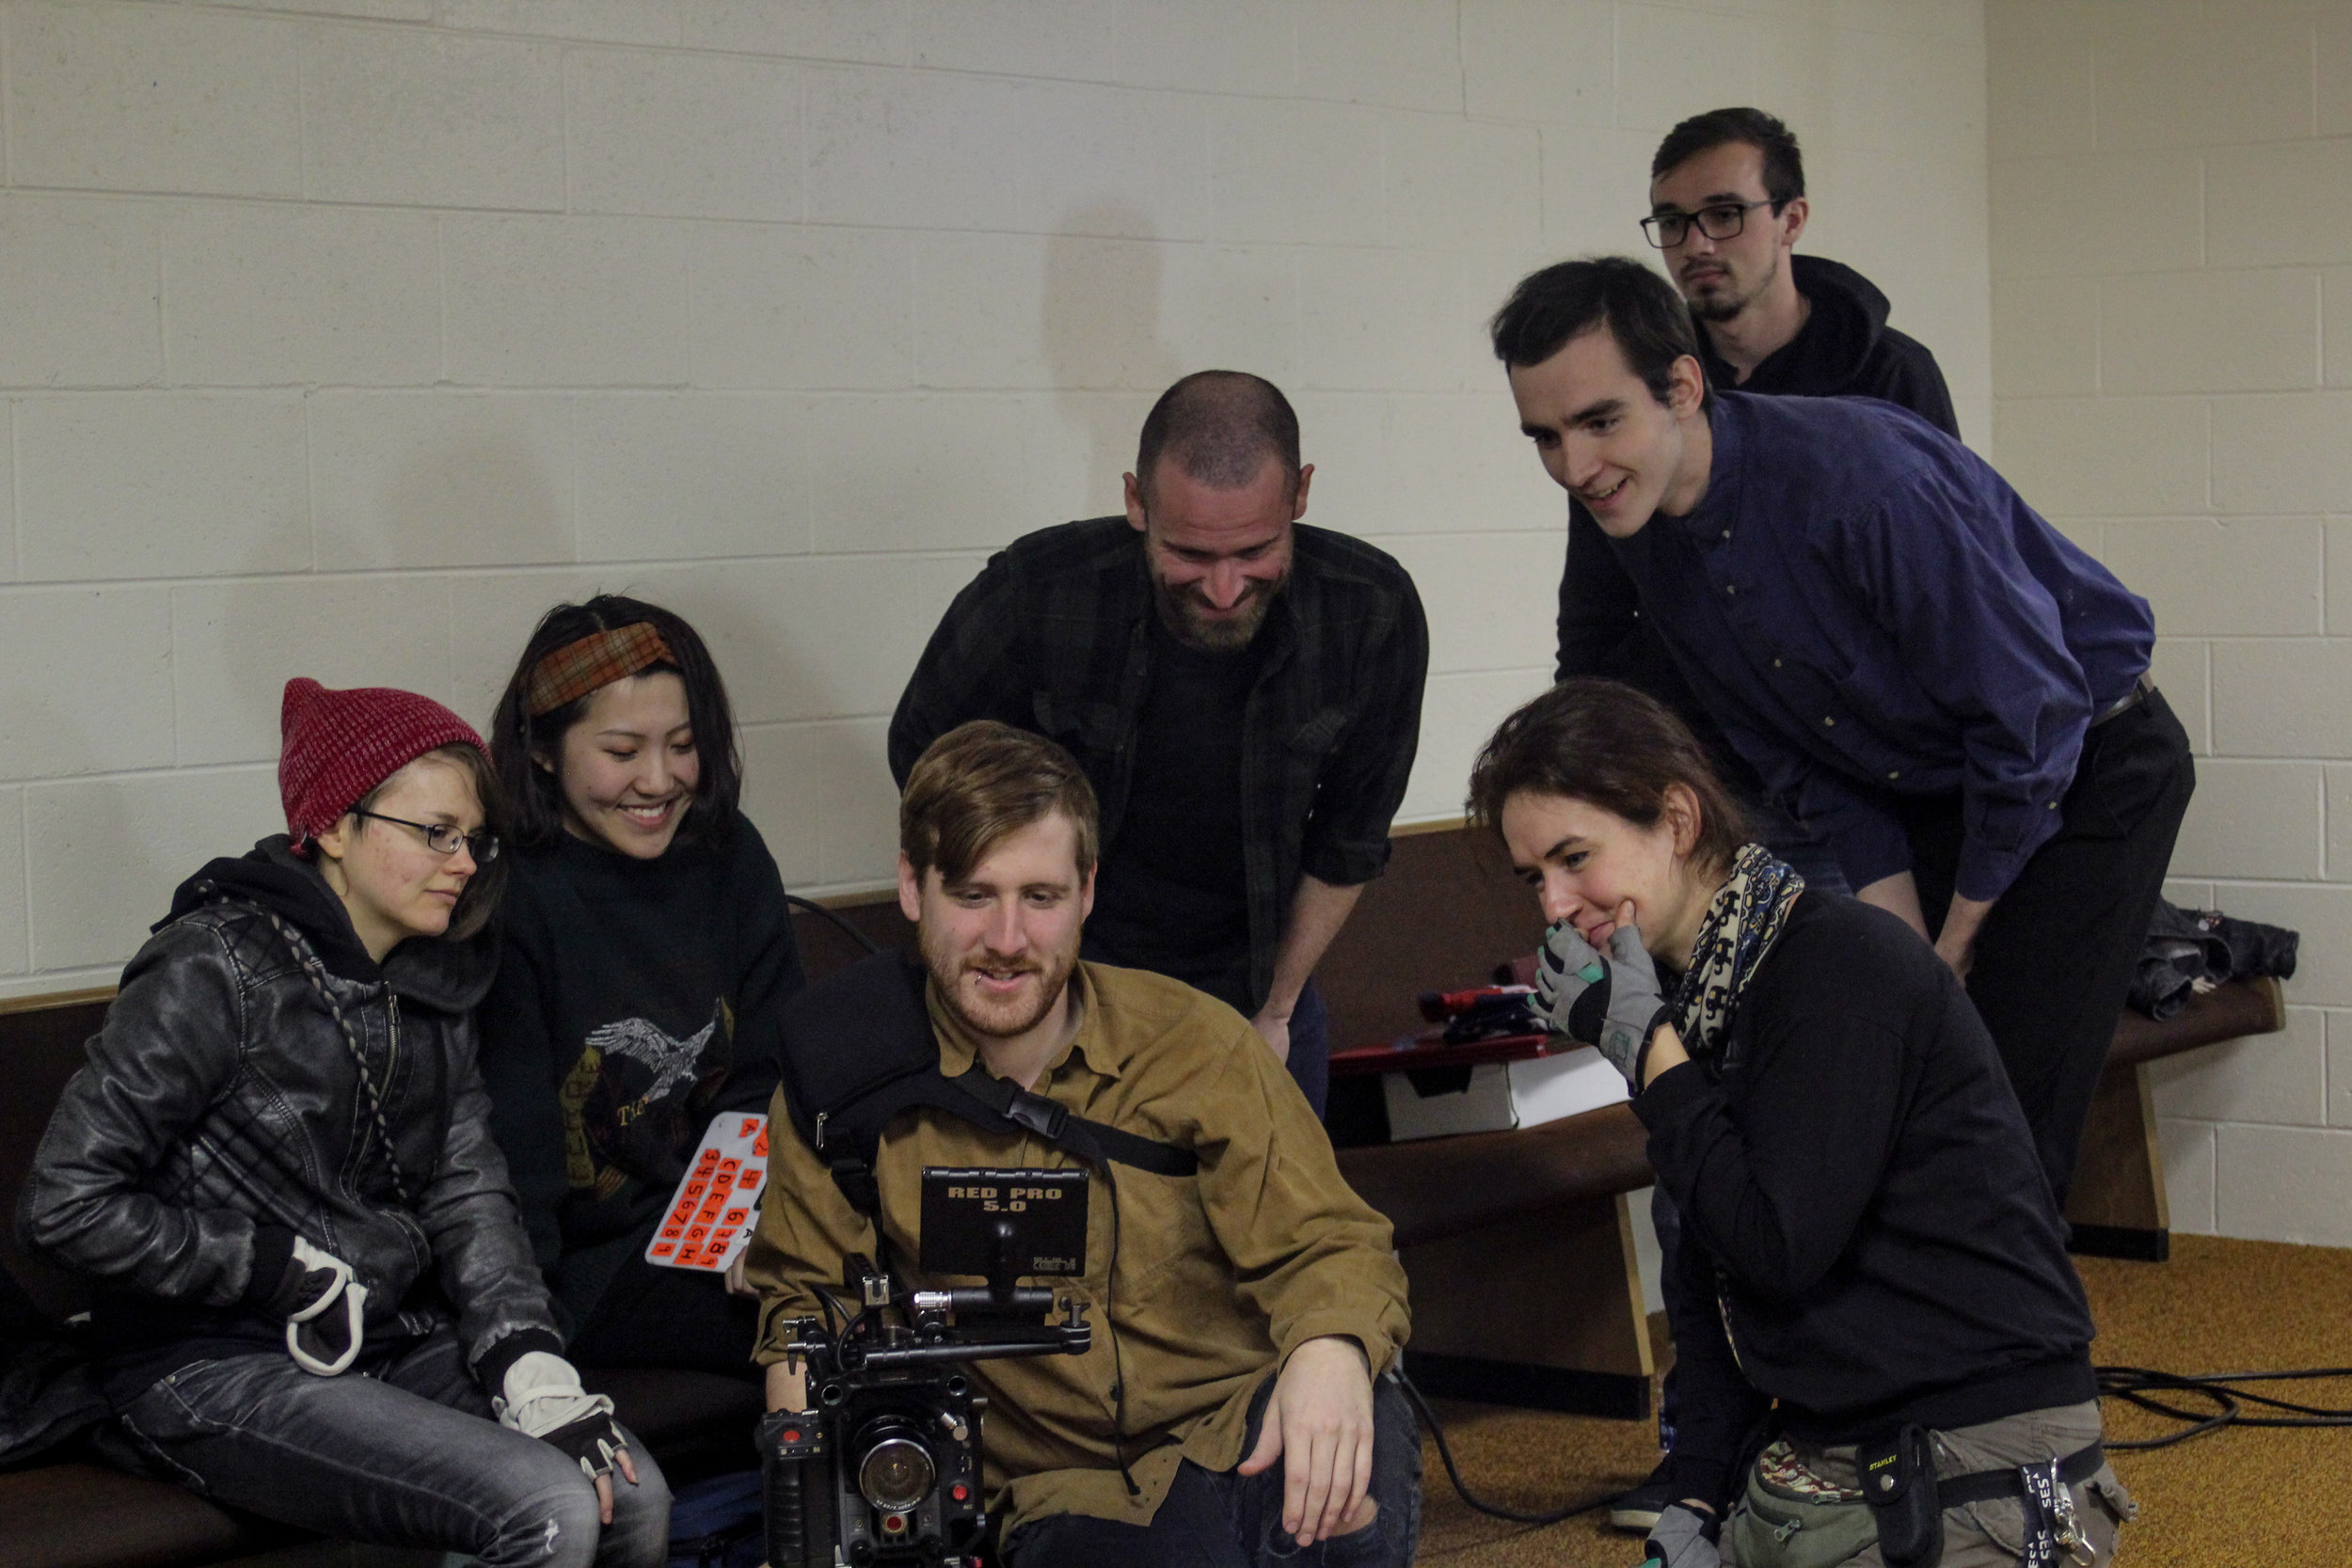 1st AC Tabitha Kennedy (Left), 2nd AC Eve Zhao (2nd Left), DP Jacob Midkiff (Lower Center), Director Graham Holford (Upper Center), PA Tony Shirk (Top Right), Lead Actor Seth Eggenschwiller (Middle Right), and Gaffer Anastasiia Kulikalova (Lower Right) on the set of Pasture, Holford's 2nd year film